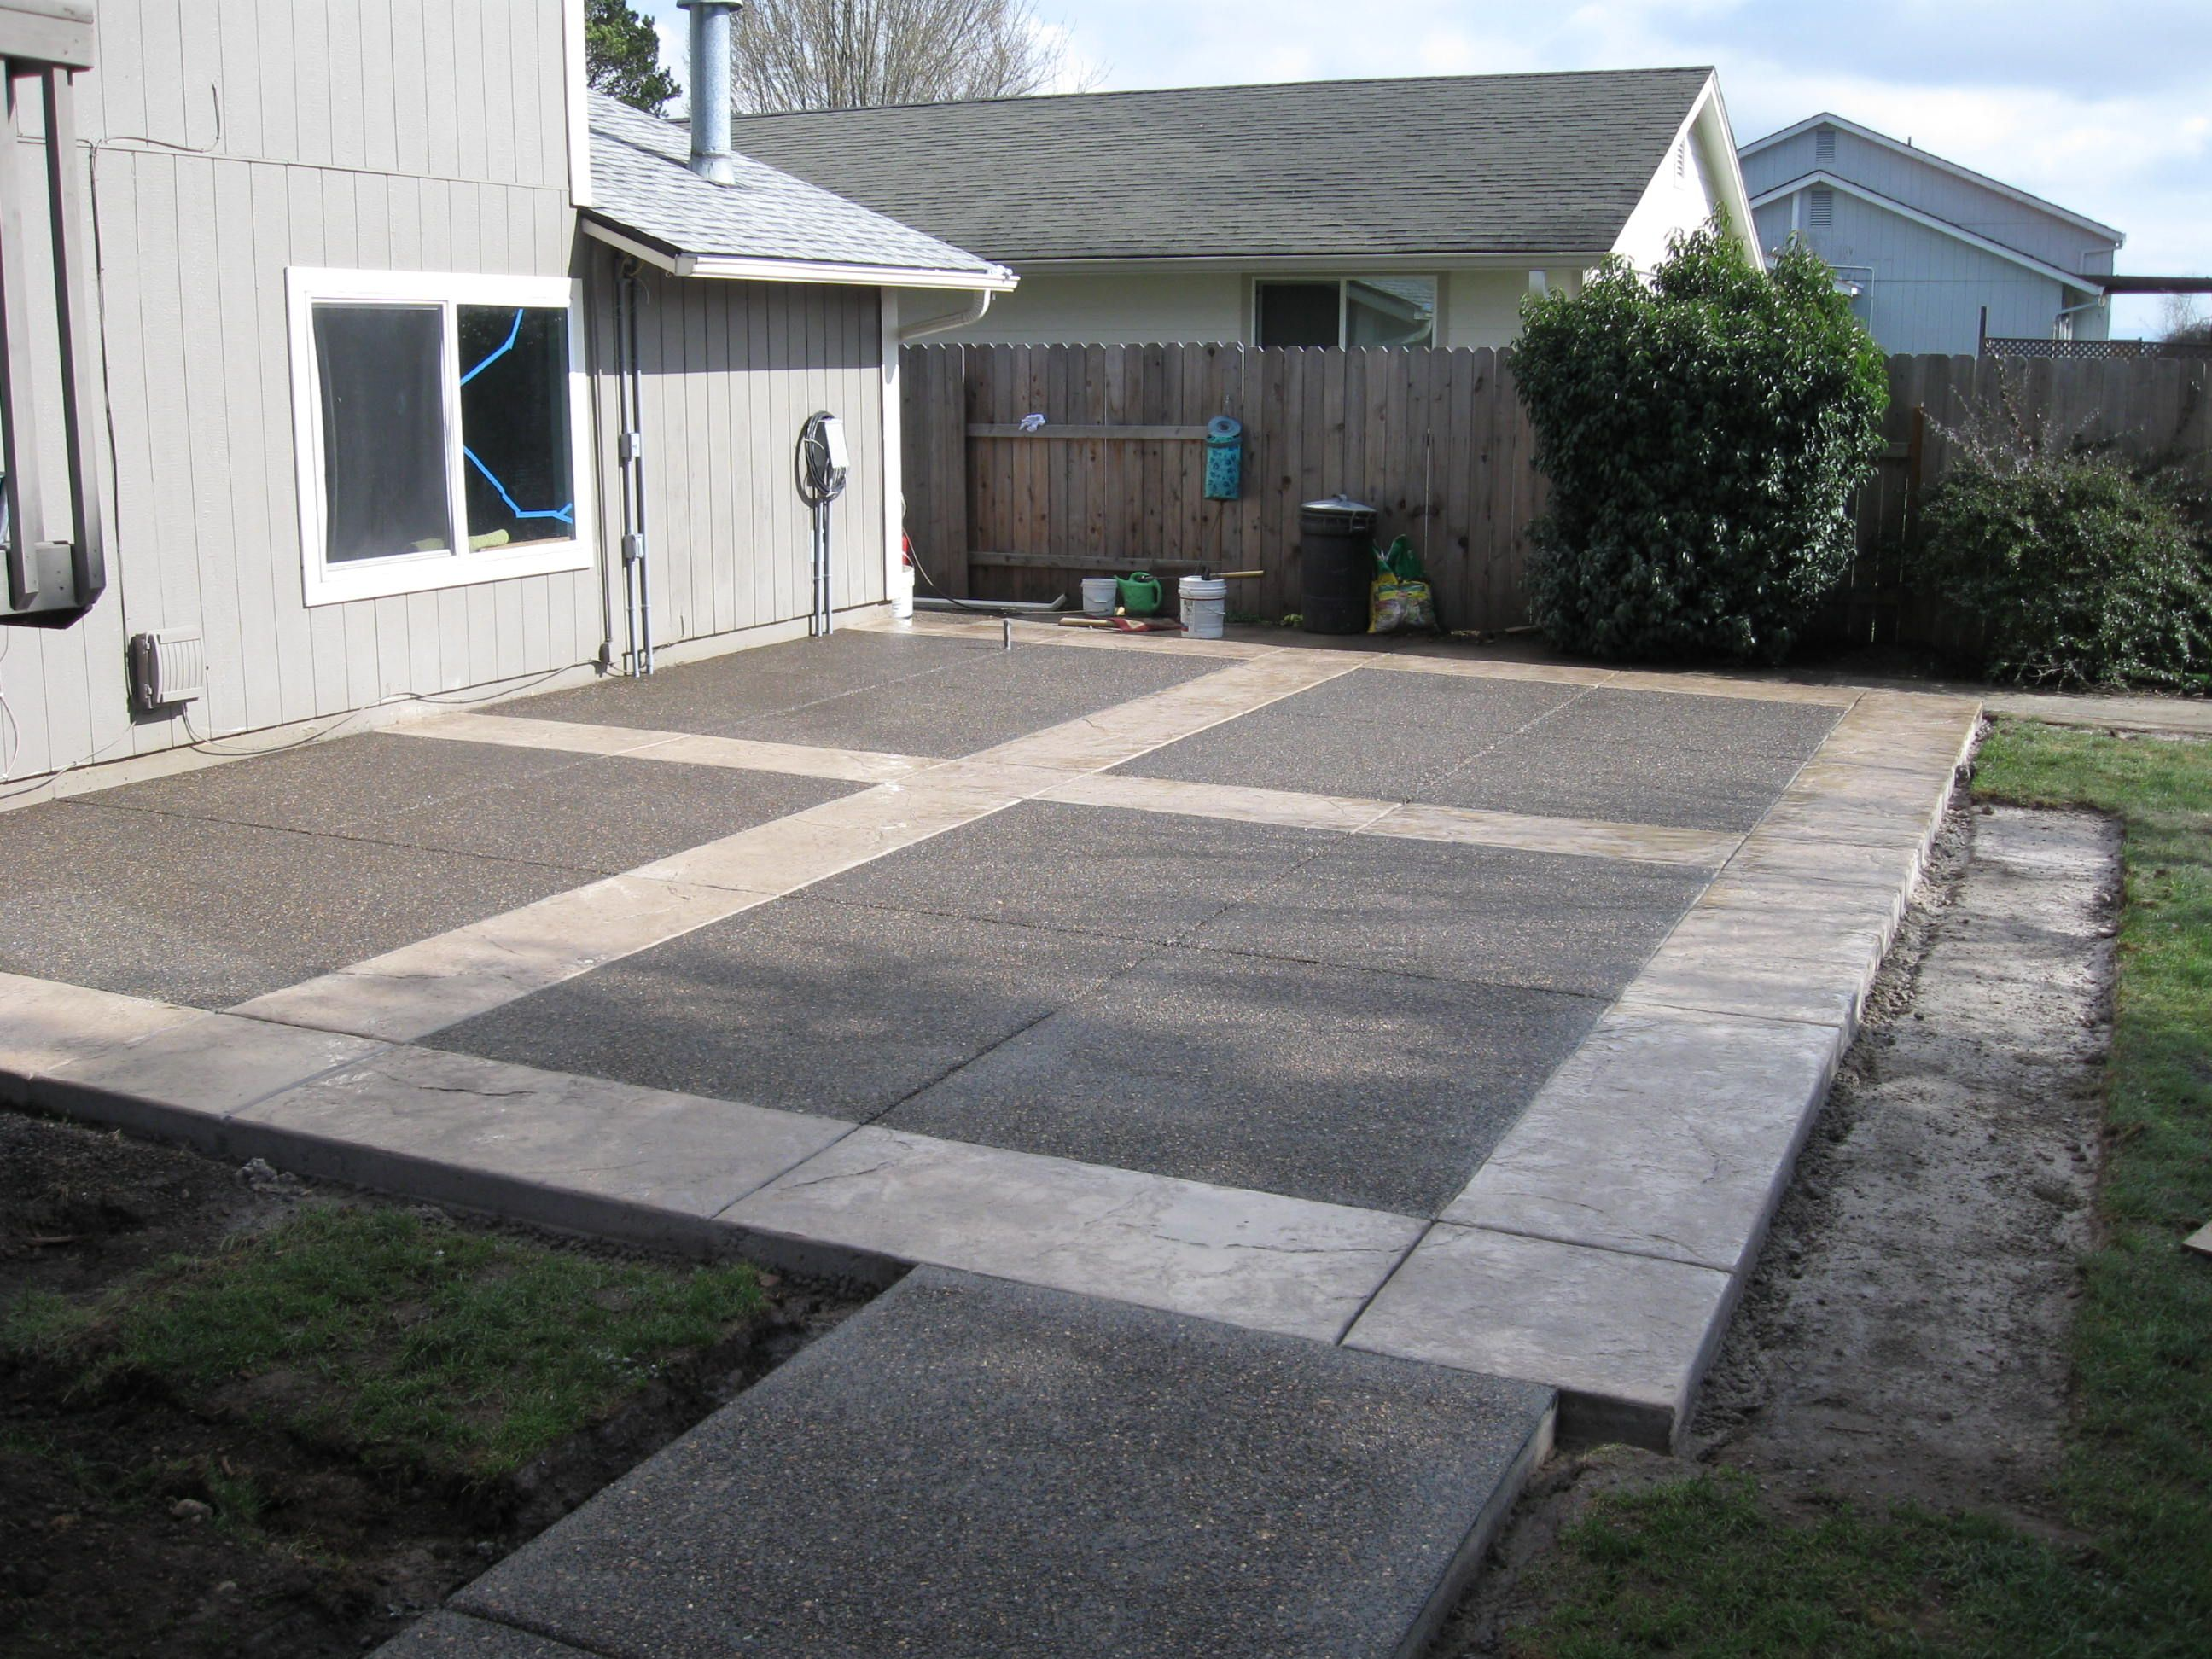 concrete patio design ideas | Creating Patios, Driveways ...